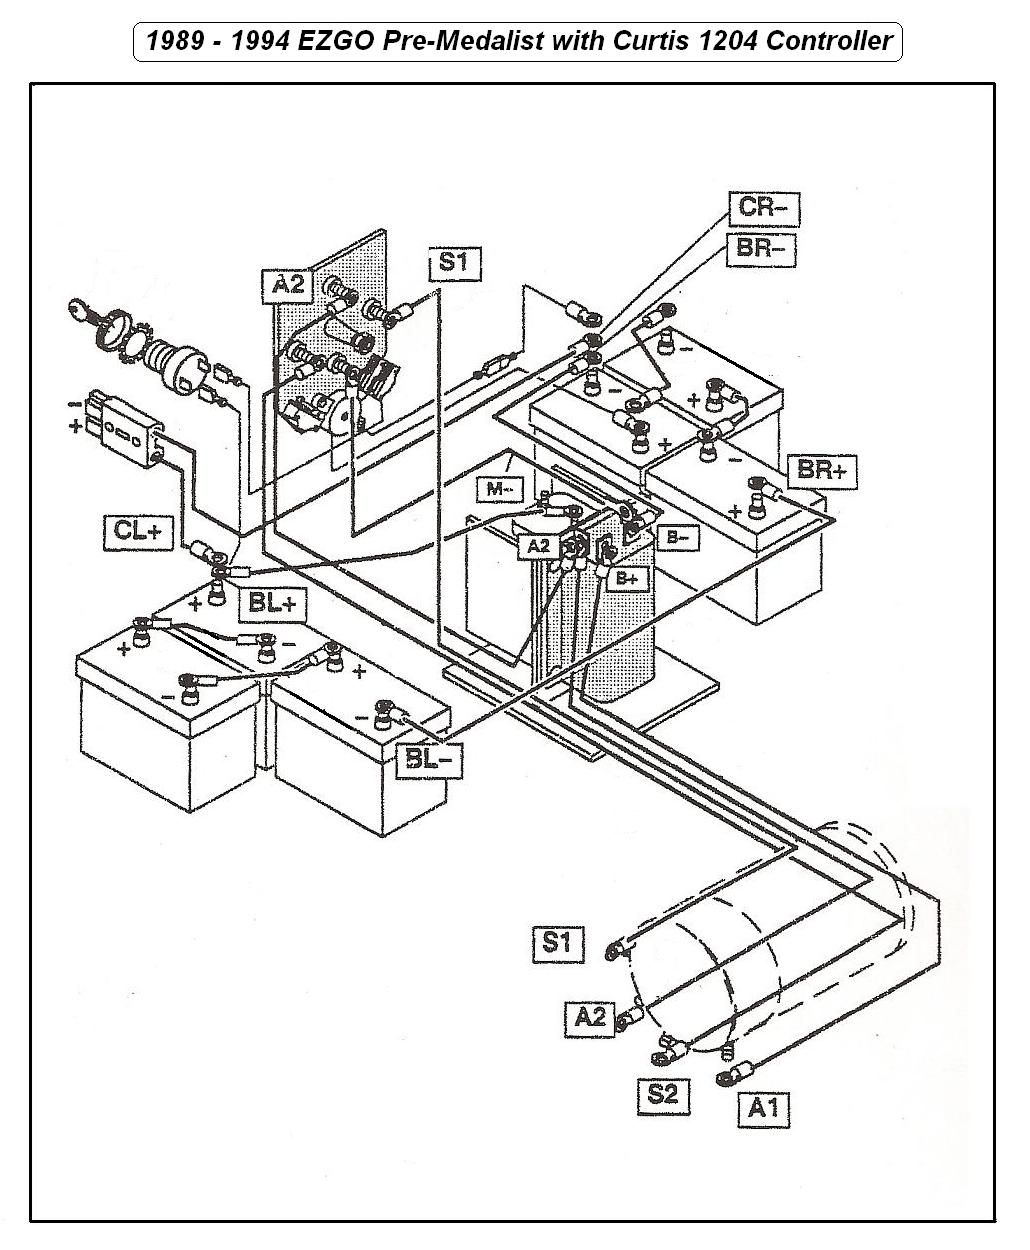 A89_94EZ_Wiring 1989 ez go wiring diagram 1989 eldorado wiring diagram \u2022 wiring 2004 club car wiring diagram 48 volt at gsmportal.co